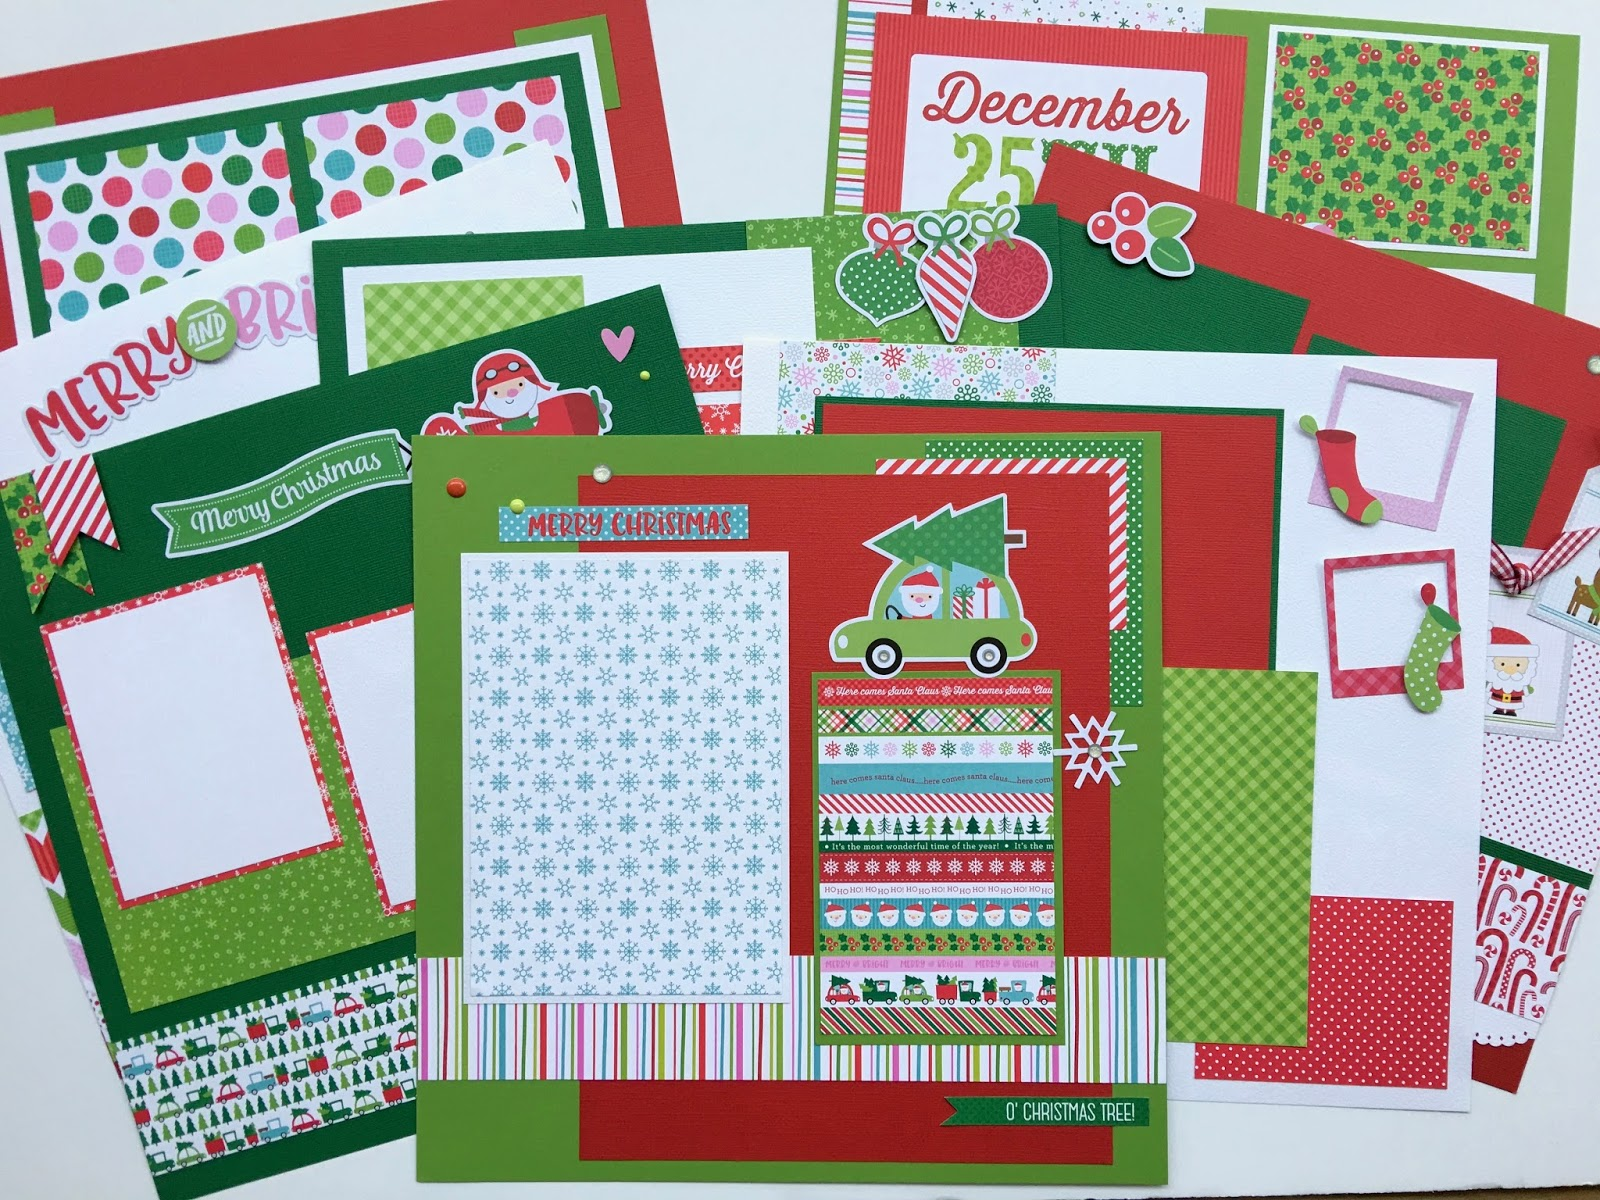 How to make scrapbook about yourself - This Is A Pre Cut Do It Yourself Scrapbook Kit That Includes All Of The Materials To Make Eight 12x12 Scrapbook Pages Also Available Pre Made Perfect For